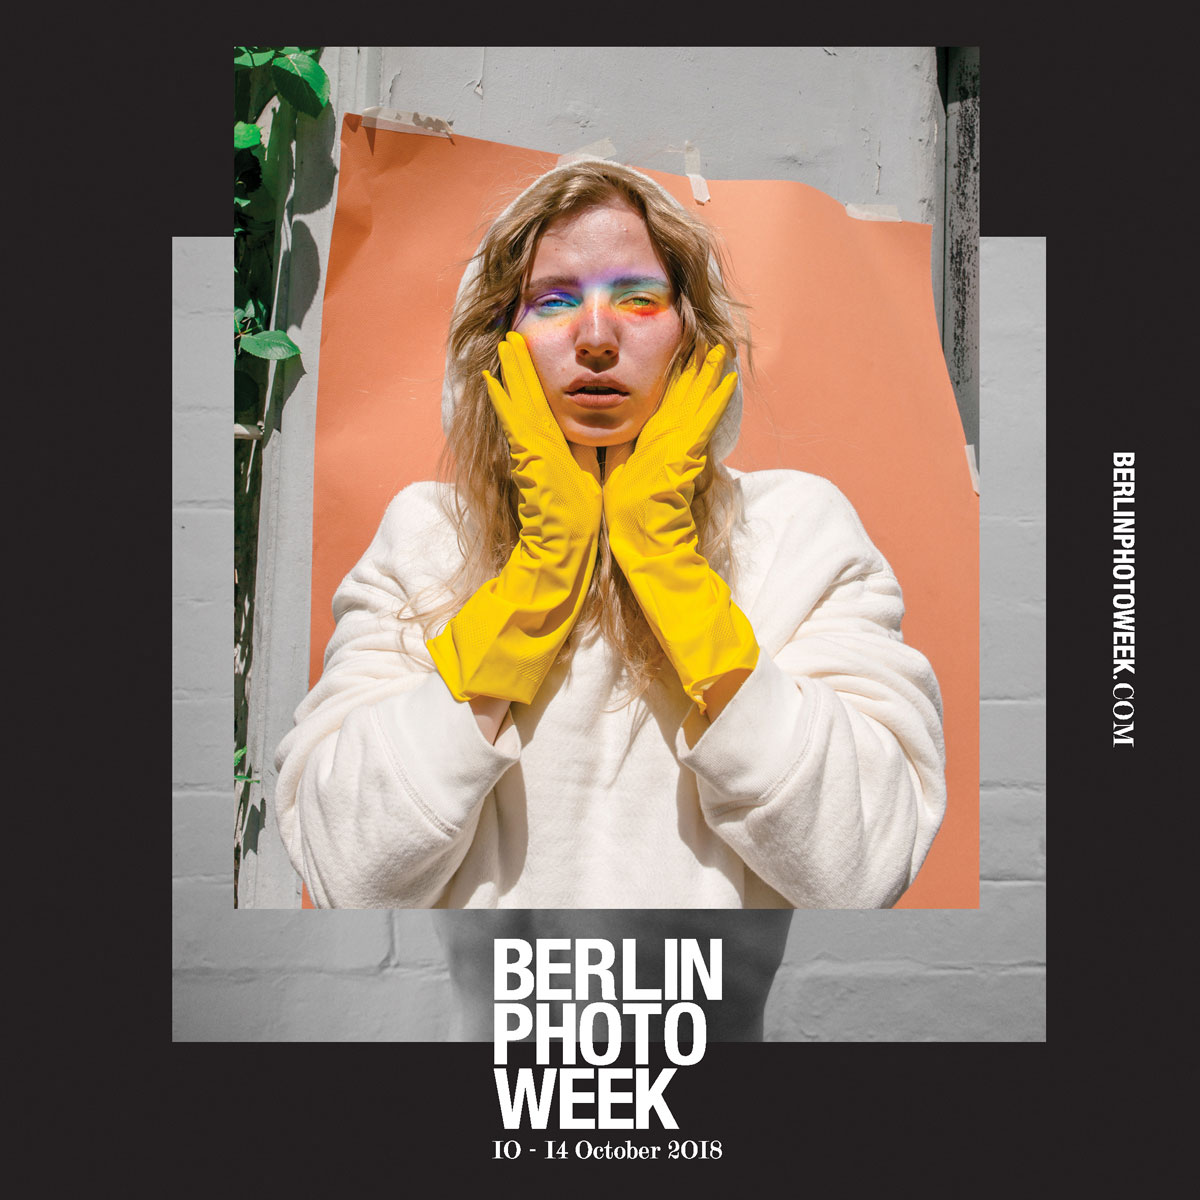 EyeEm | Berlin Photo Week 2018